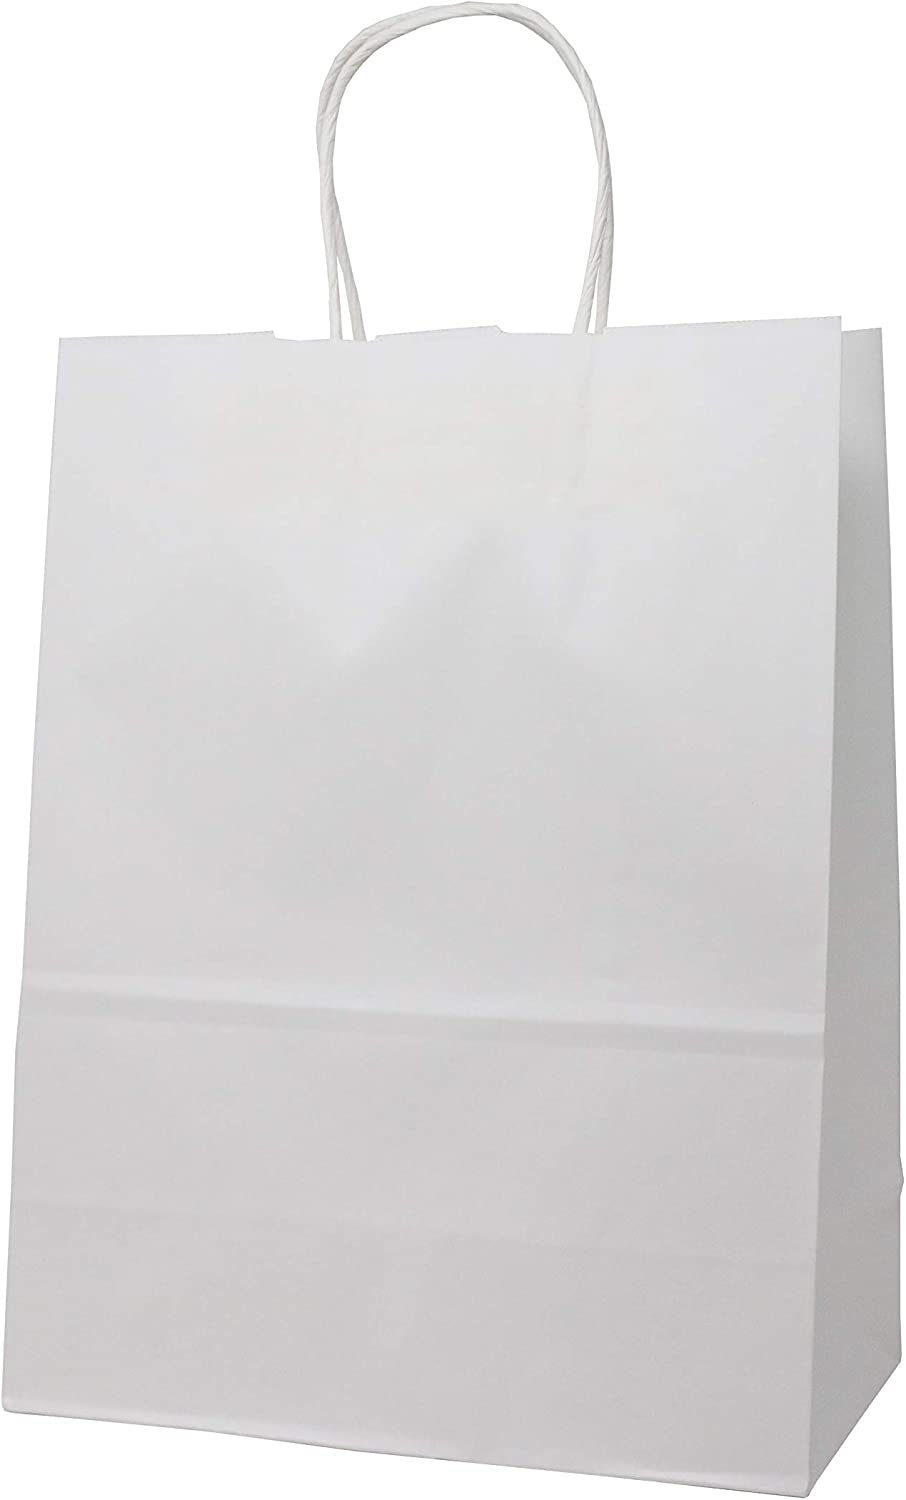 Creative Bag SEAL limited product White Paper Boutique for Bags Wedding with Handles Under blast sales